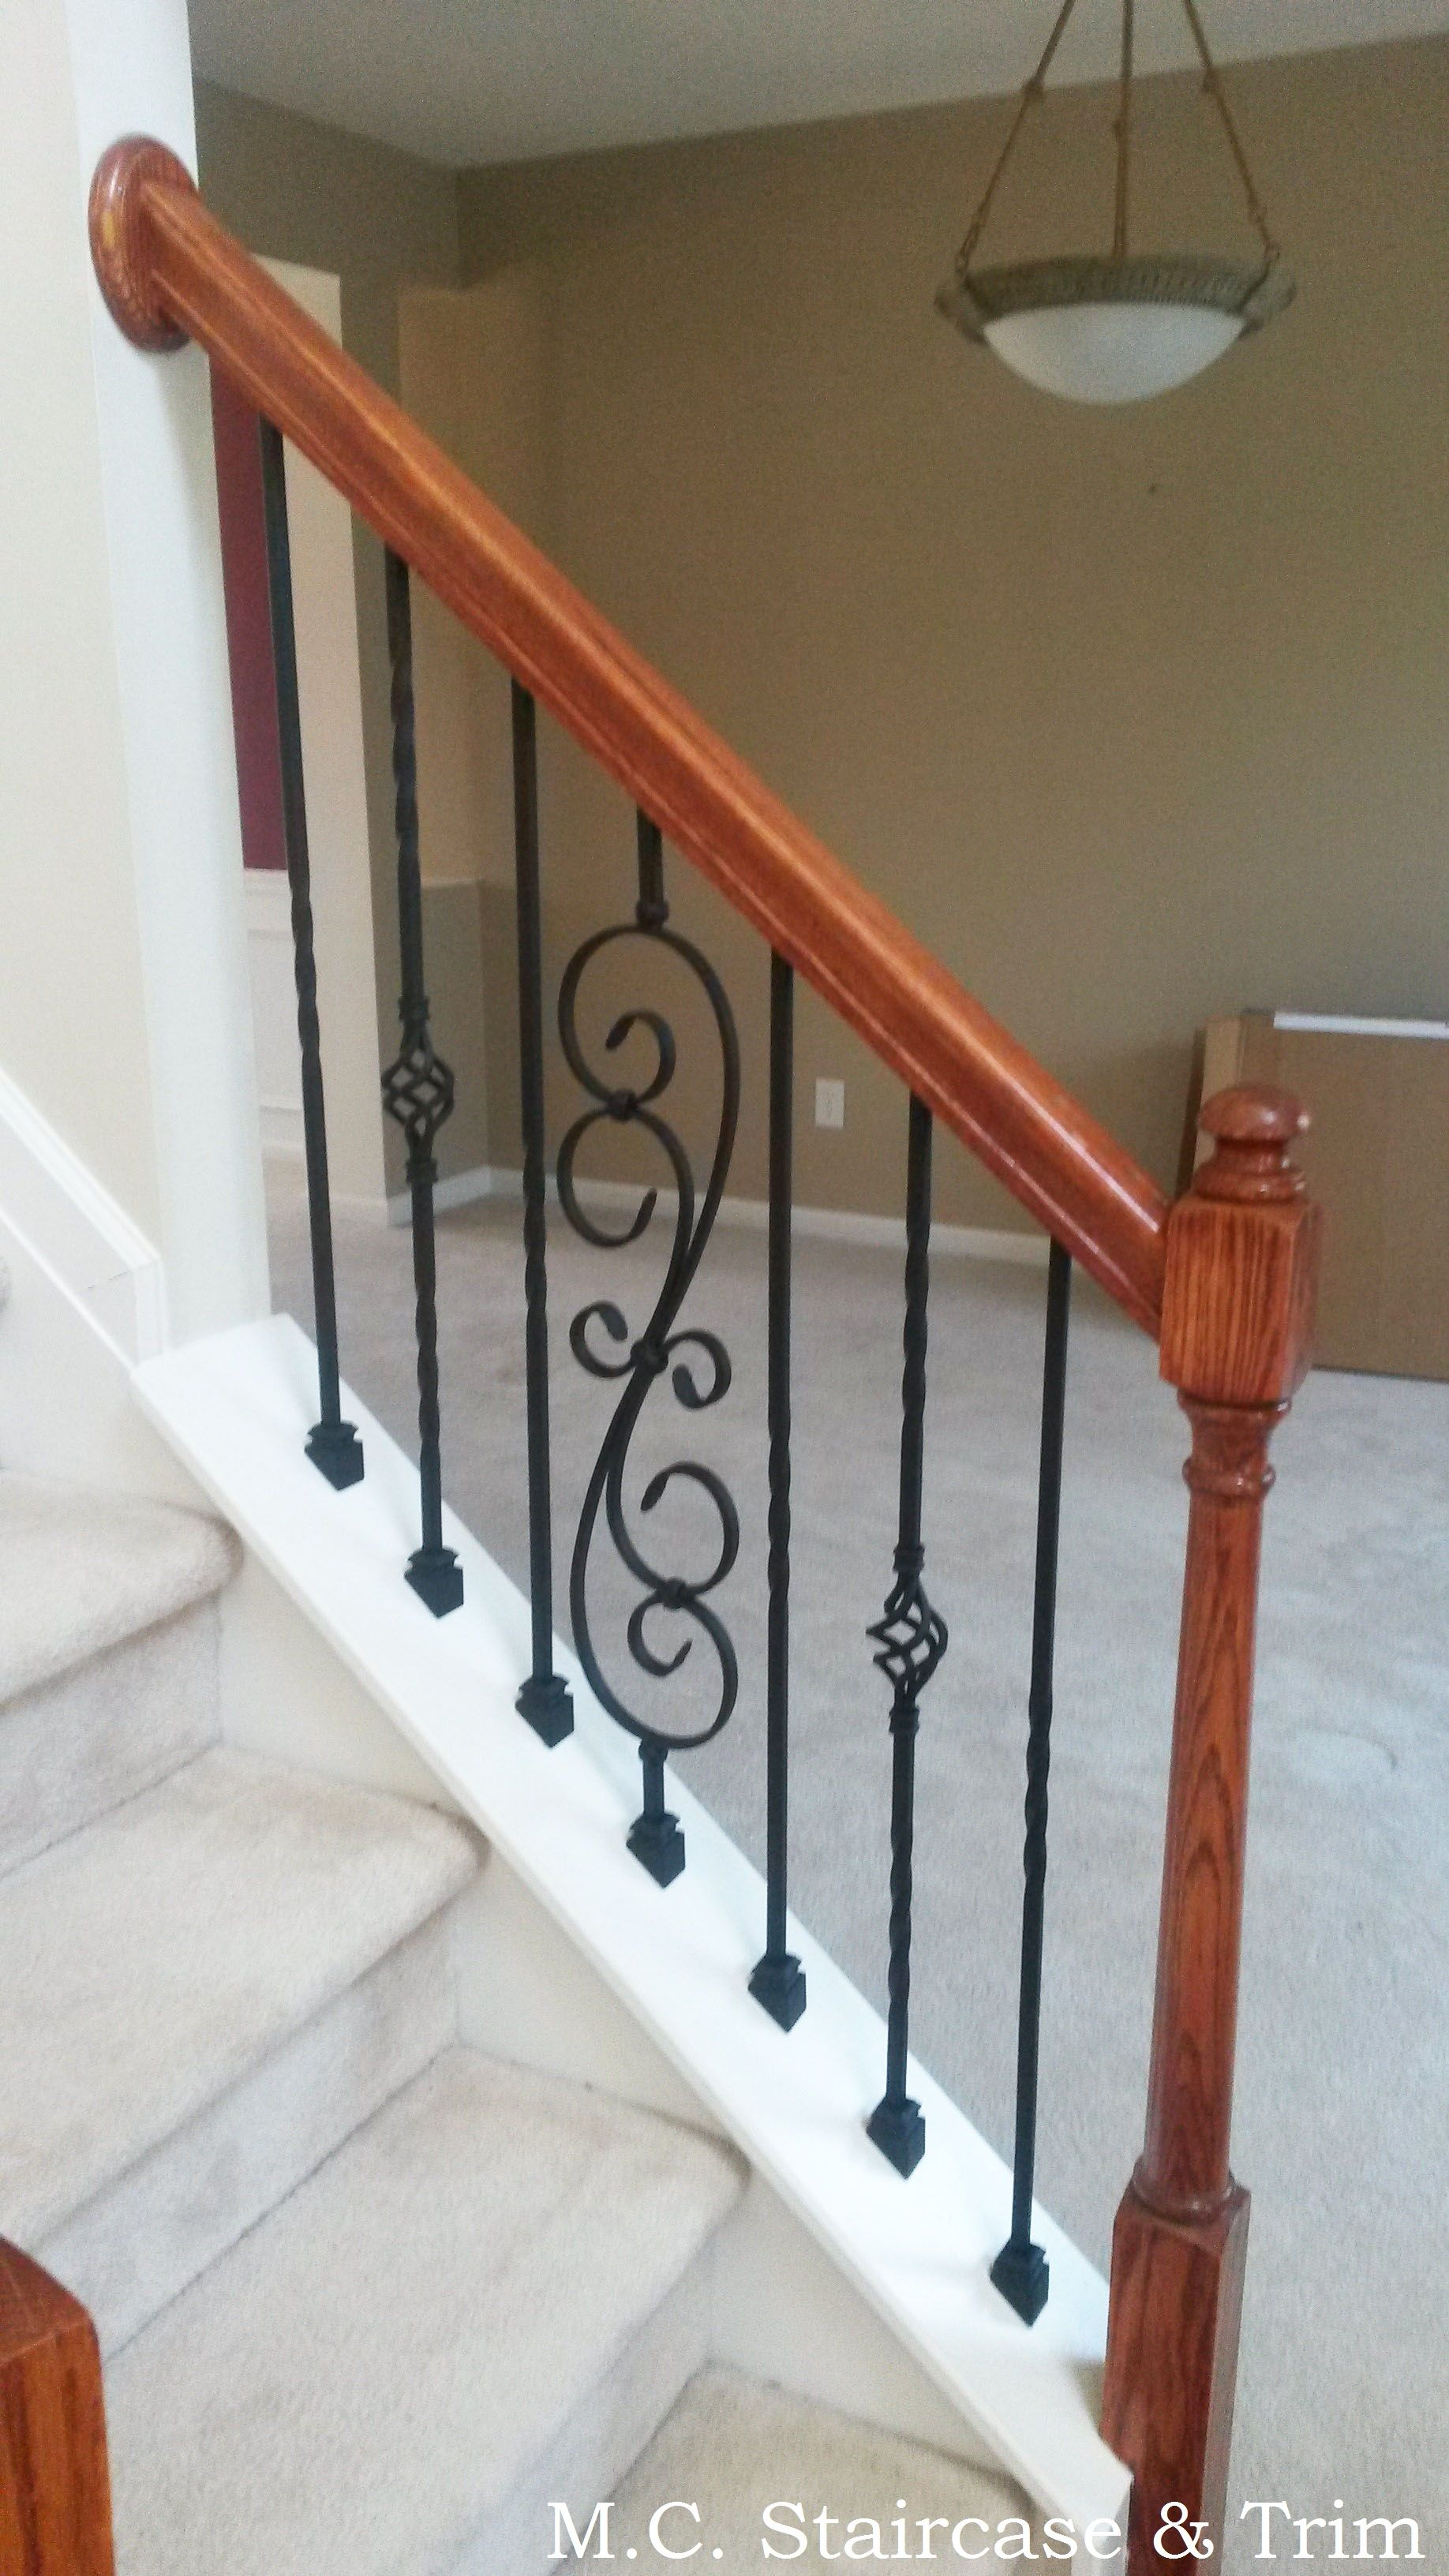 Iron baluster upgrade from M C Staircase & Trim Removal of wooden balusters and installation of alternating Twist Series Single Twist and Single Basket